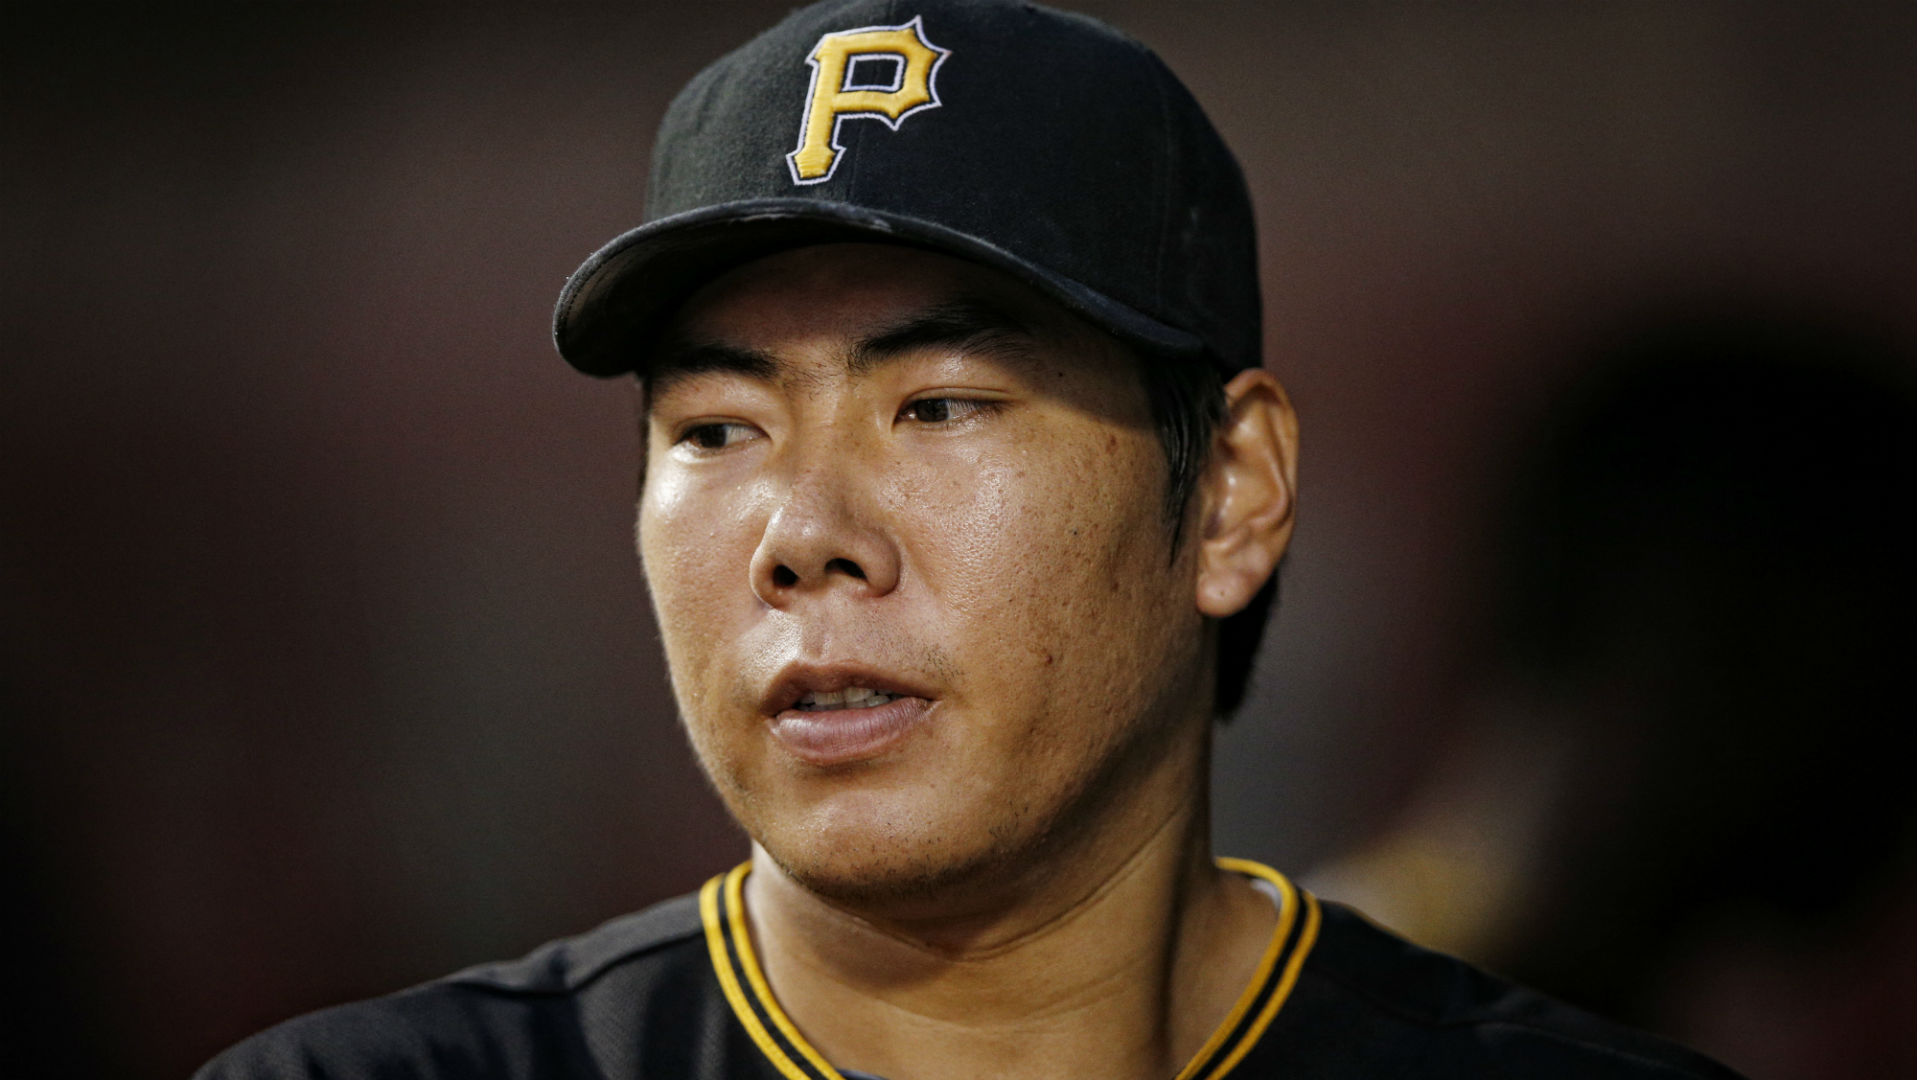 Jung Ho Kang injury update: Pirates infielder to miss 4-6 weeks after wrist surgery